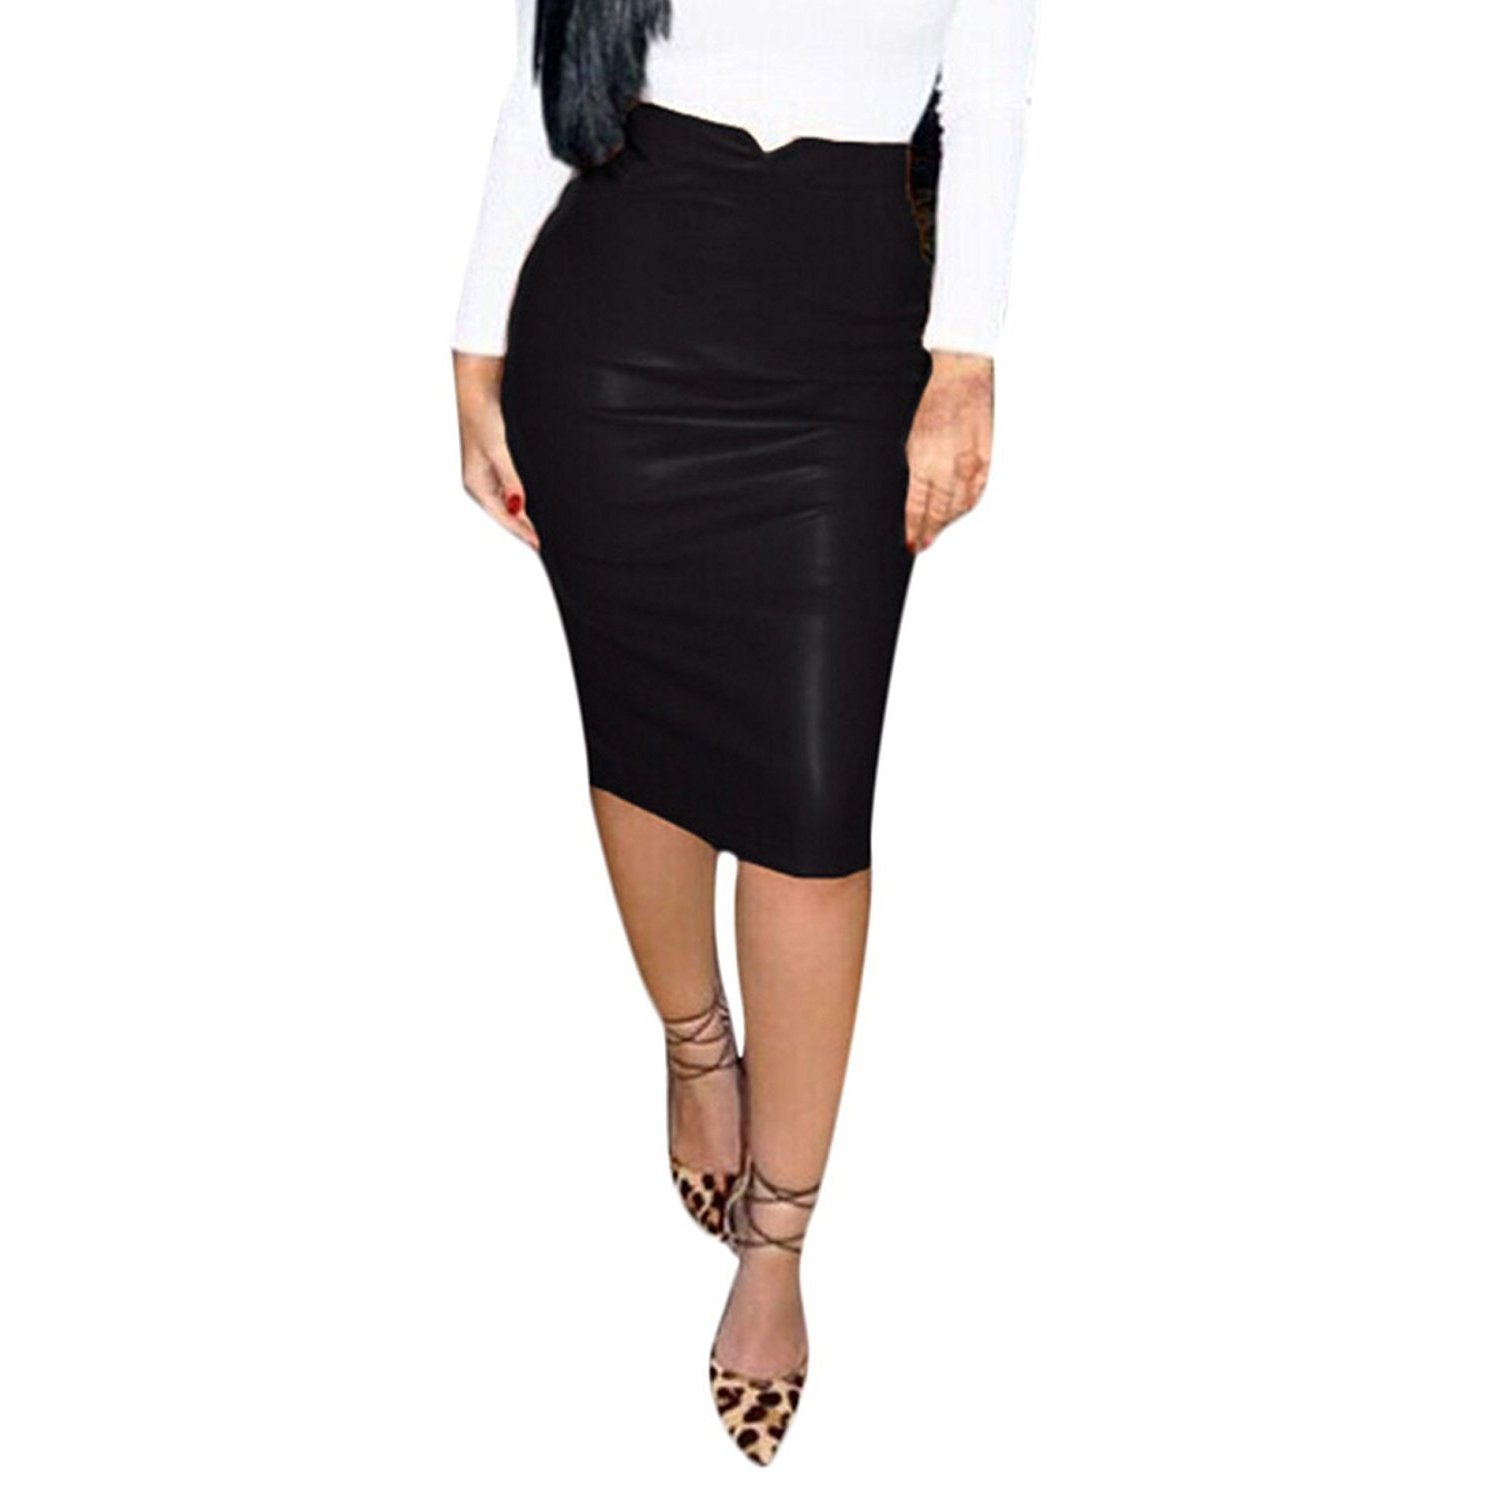 Women's Sexy Hot Red Faux Leather Knee Length Bodycon Business Pencil Skirt